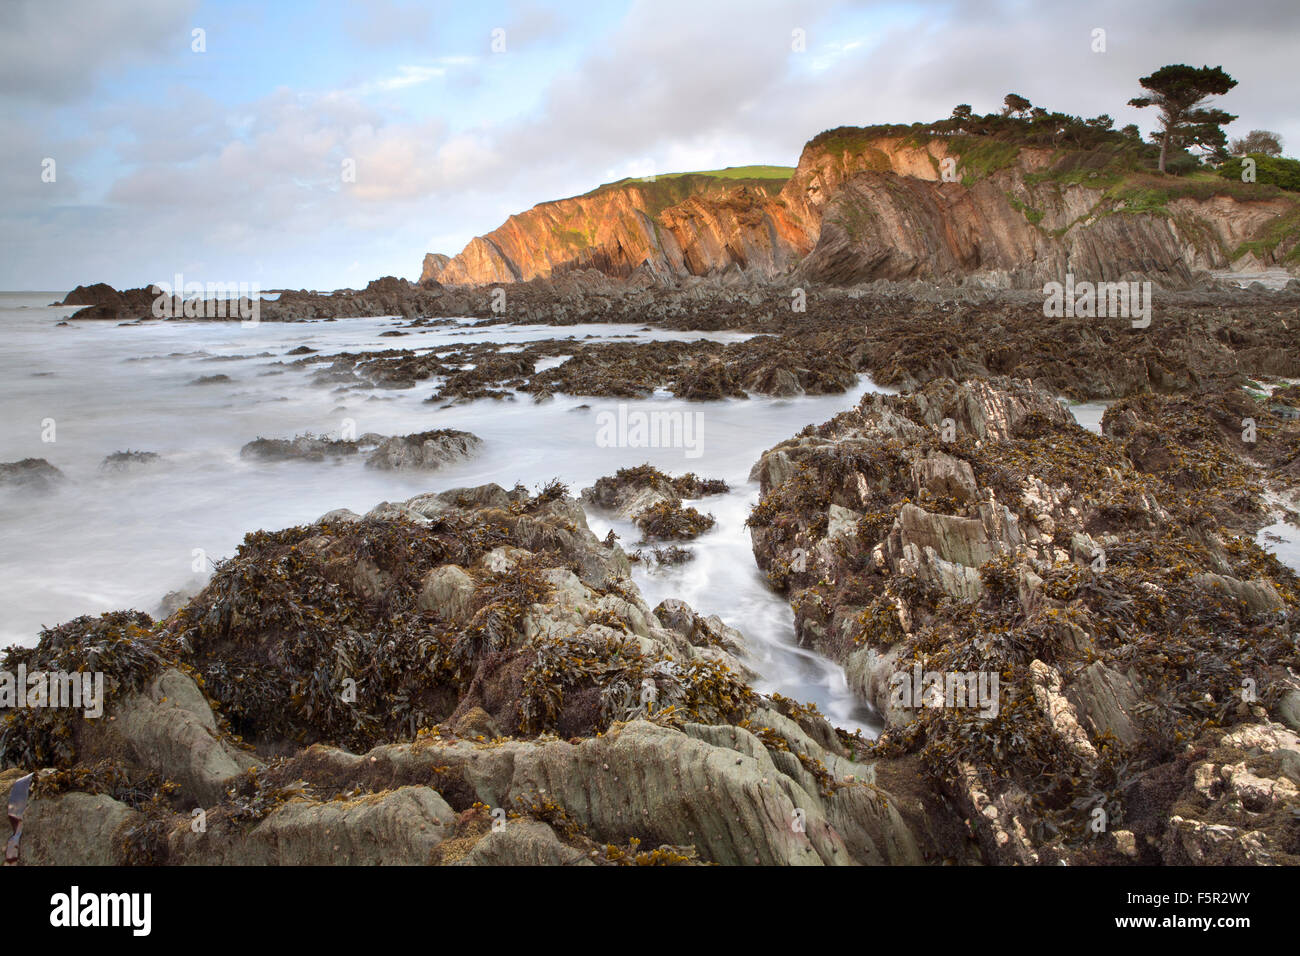 Seaweed on the rocks at Lee Devon, at low tide at sunset. Stock Photo